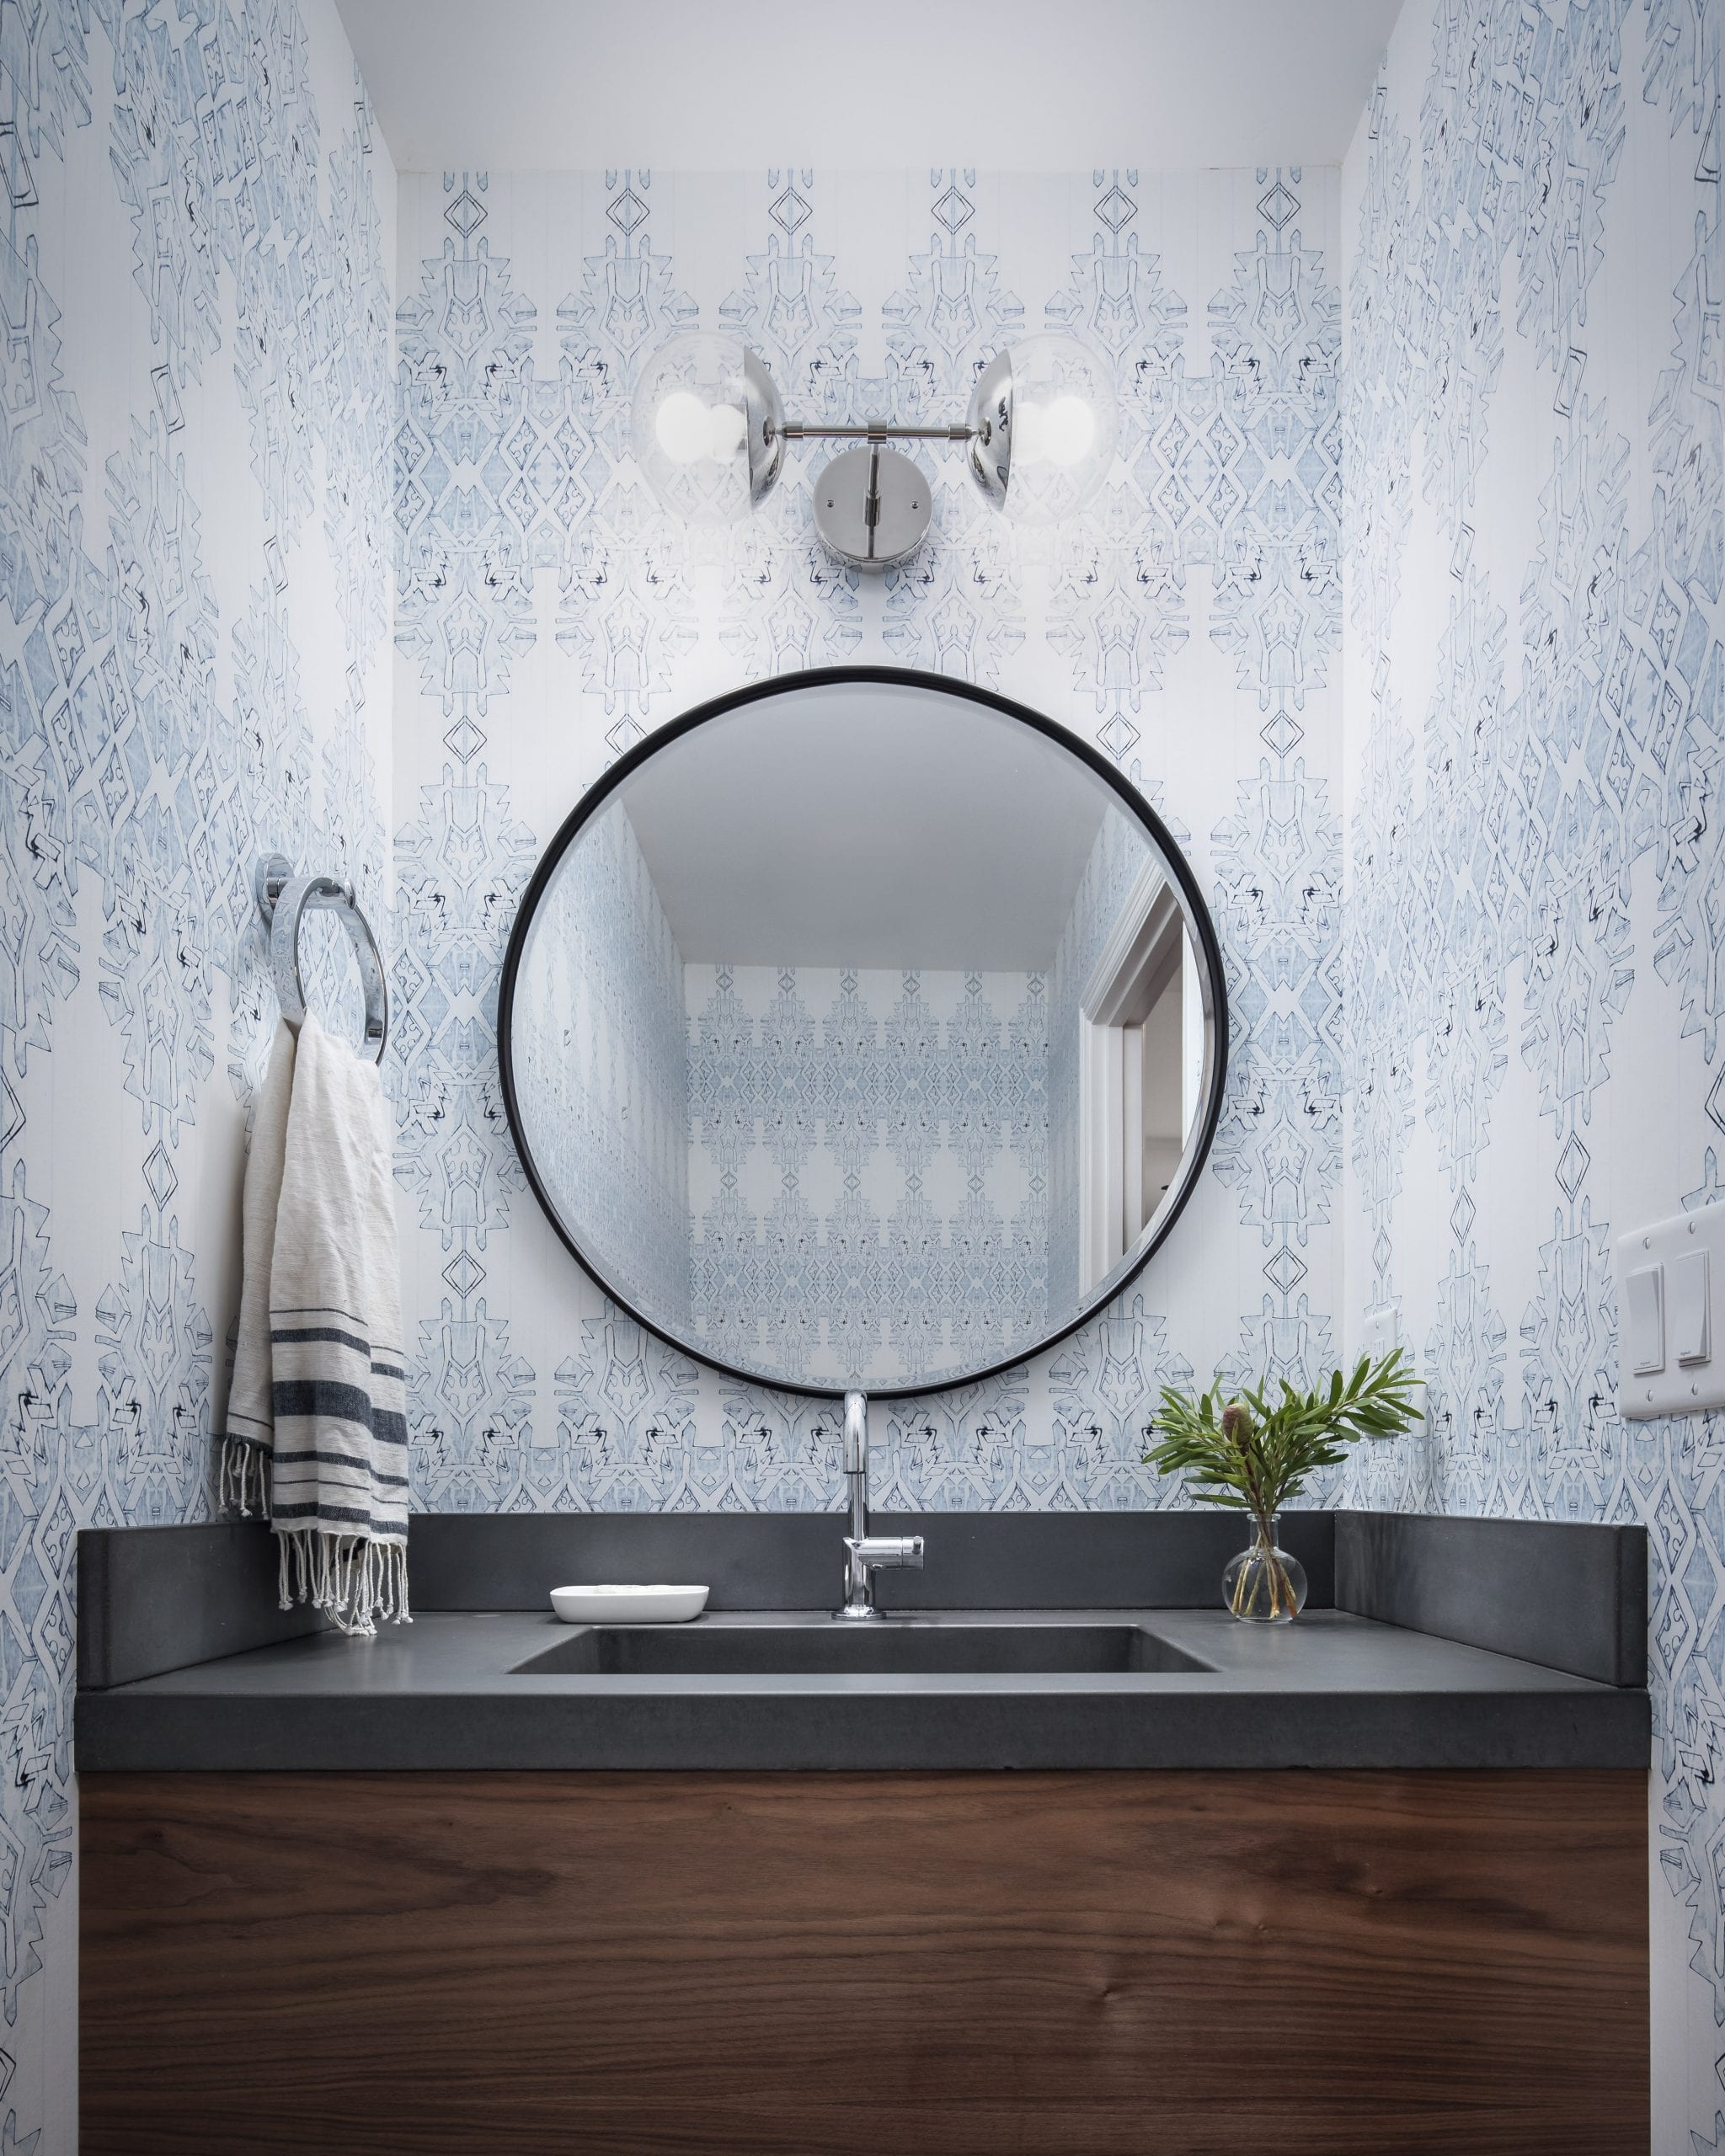 Bathroom with black circular mirror and blue and white wallpaper